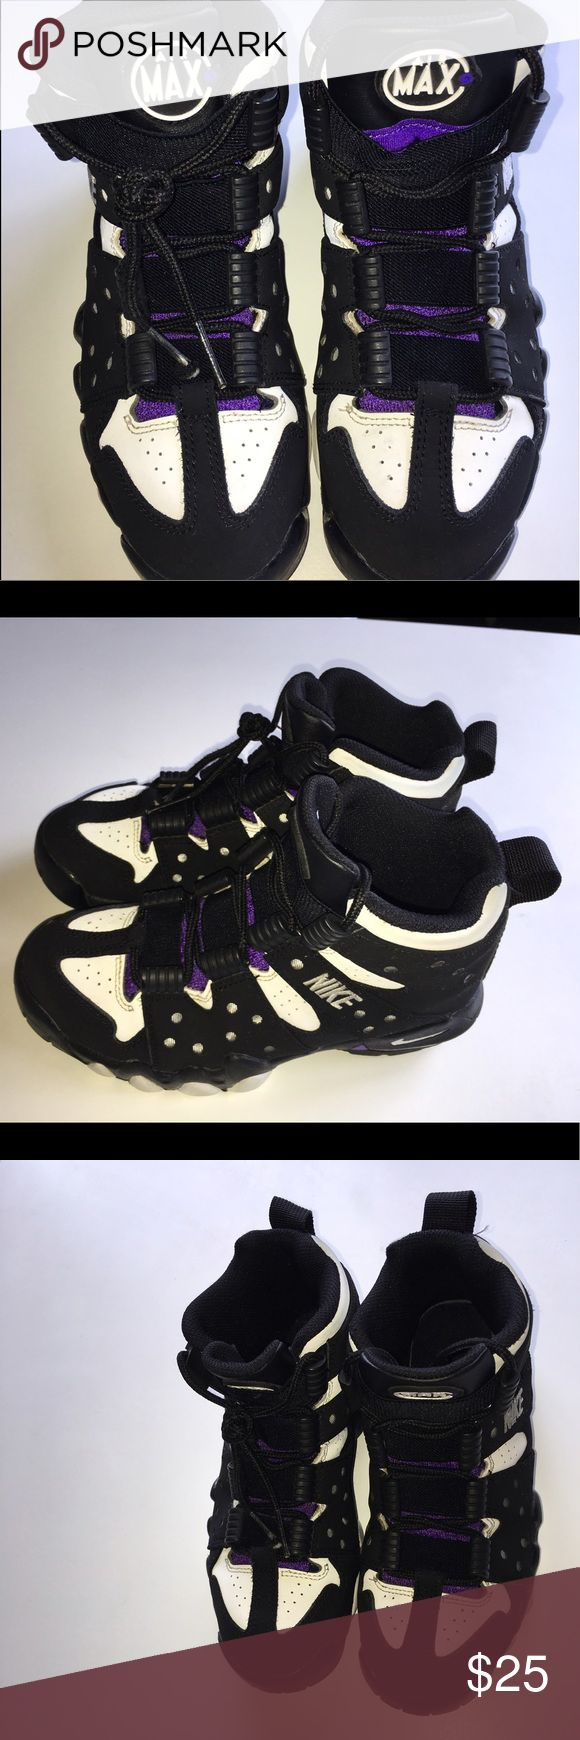 air max cb charles barkley sneakers for kids